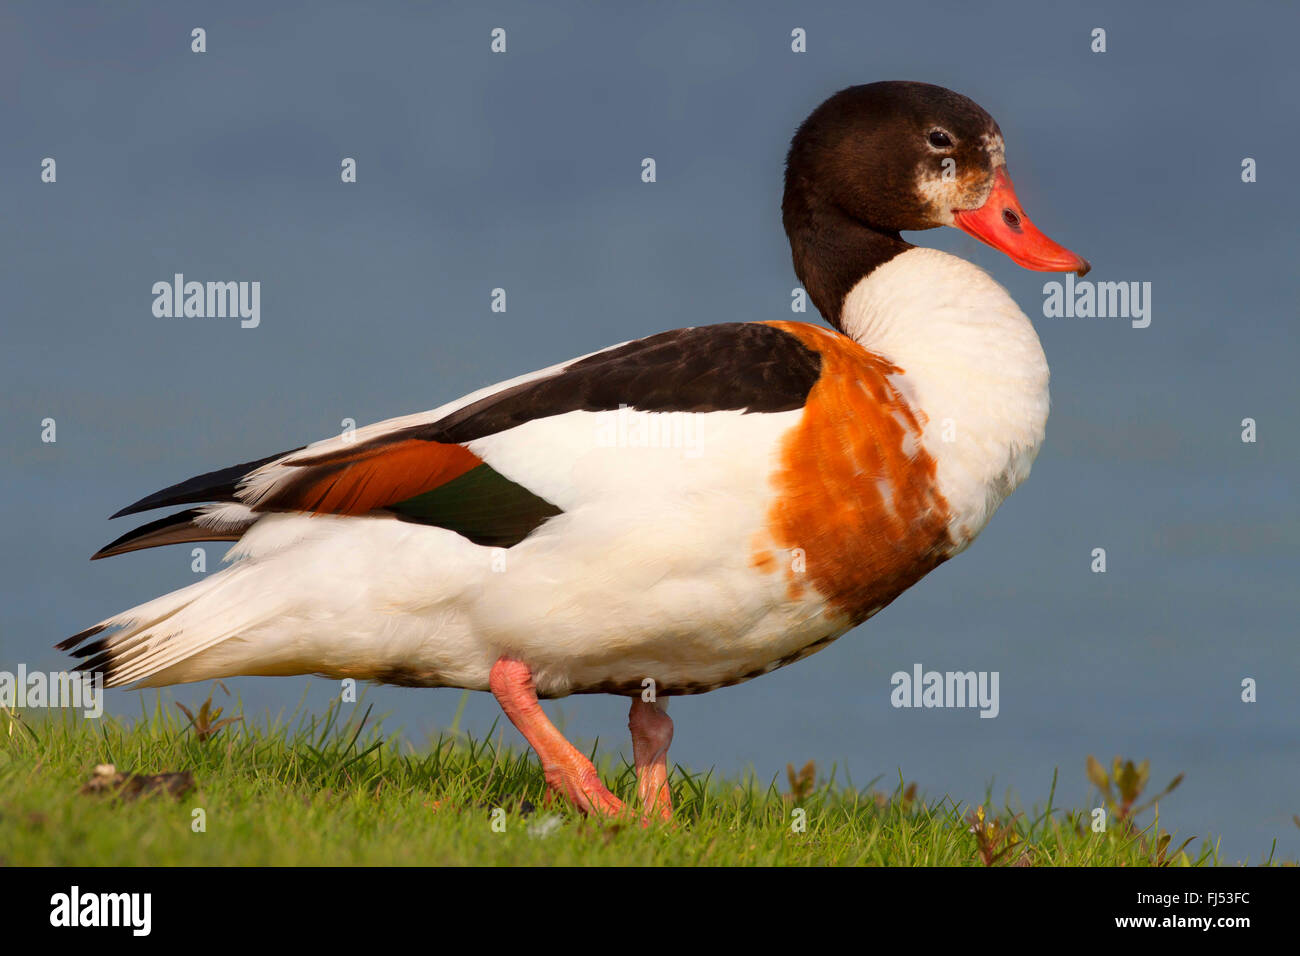 common shelduck (Tadorna tadorna), female standing at the edge of the shore, side view, Germany, Schleswig-Holstein - Stock Image